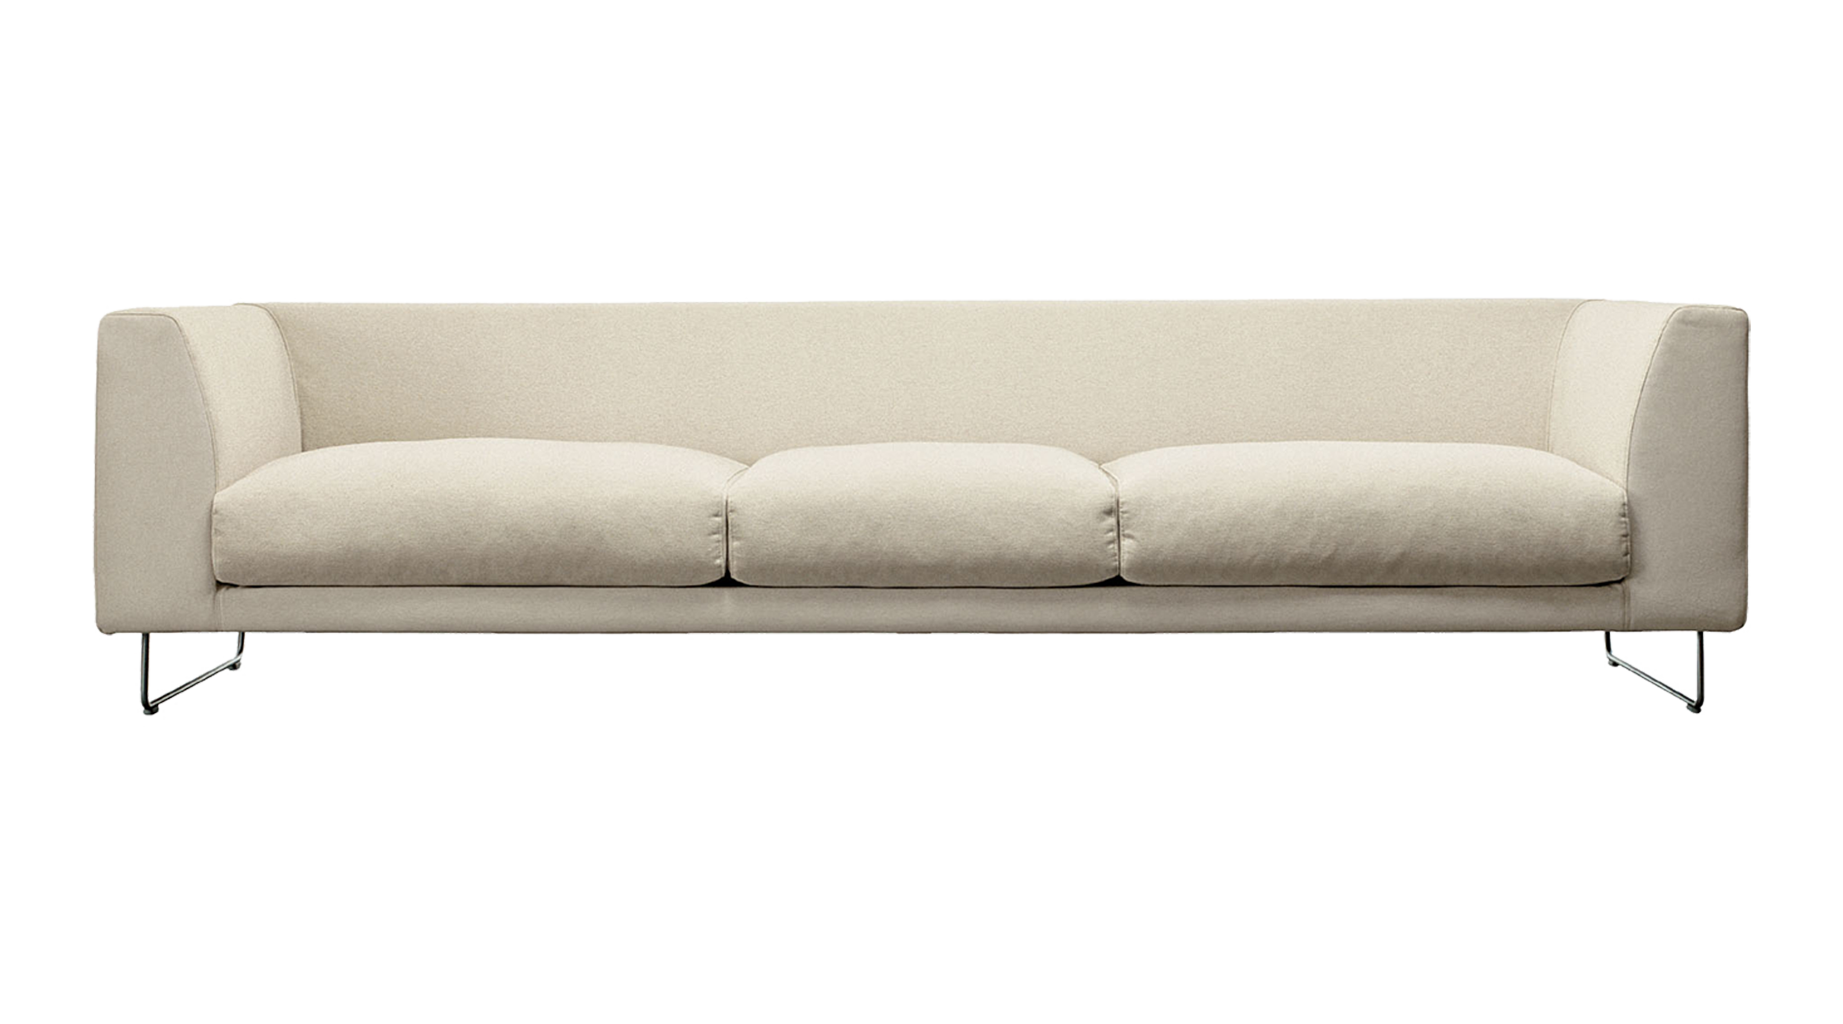 Sofa images free download. Couch png svg library library